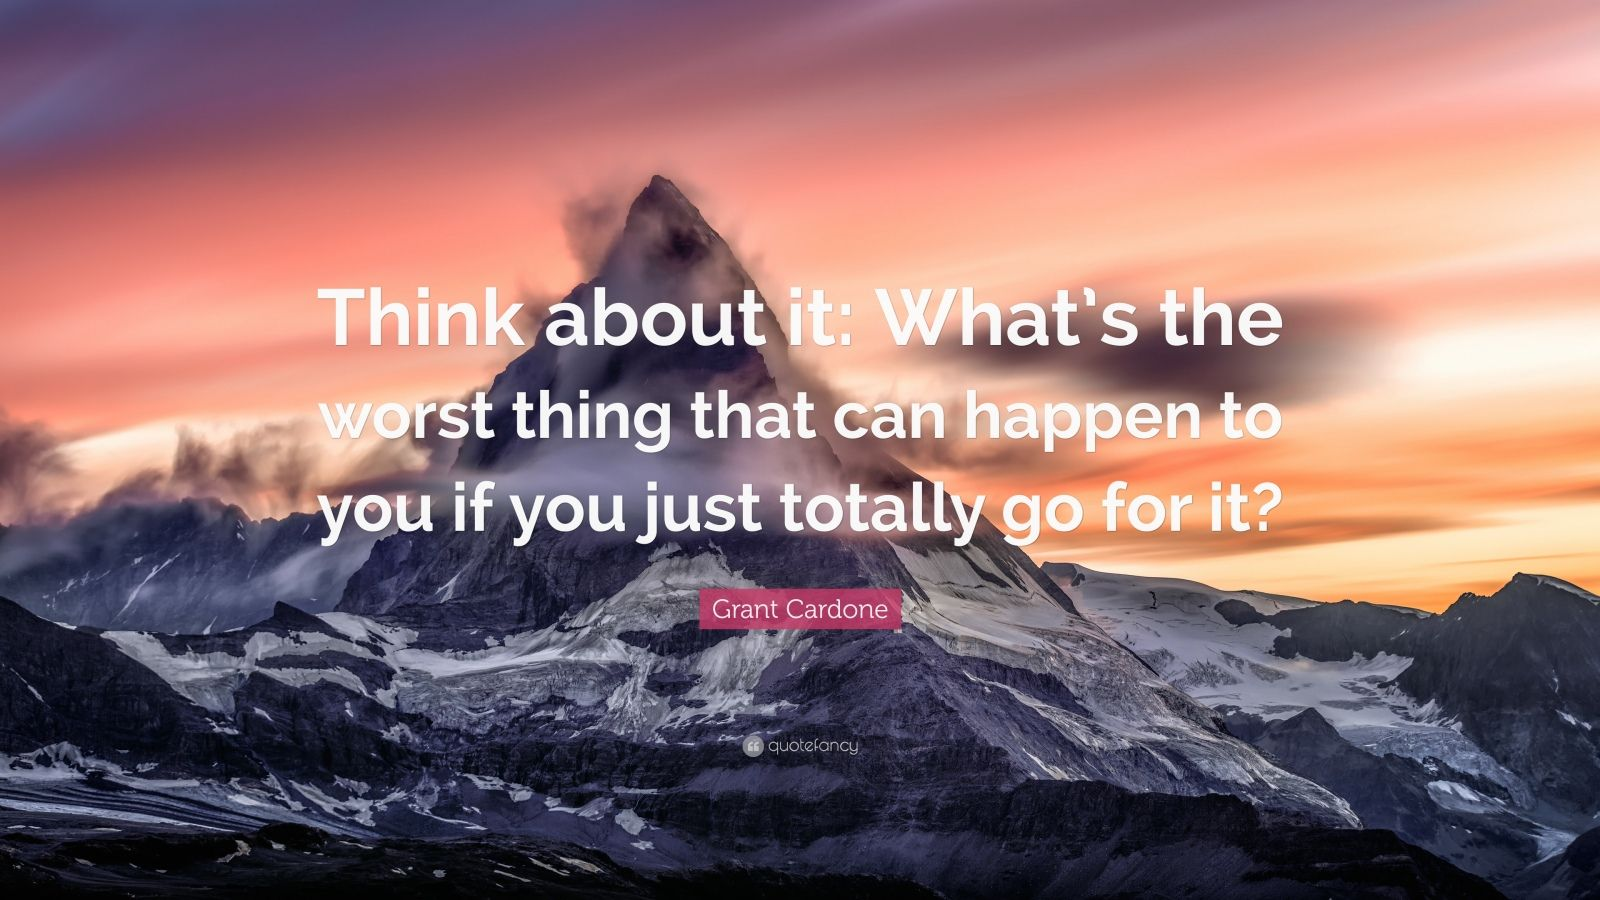 """Grant Cardone Quote: """"Think about it: What's the worst thing that can happen to you if you just totally go for it?"""""""